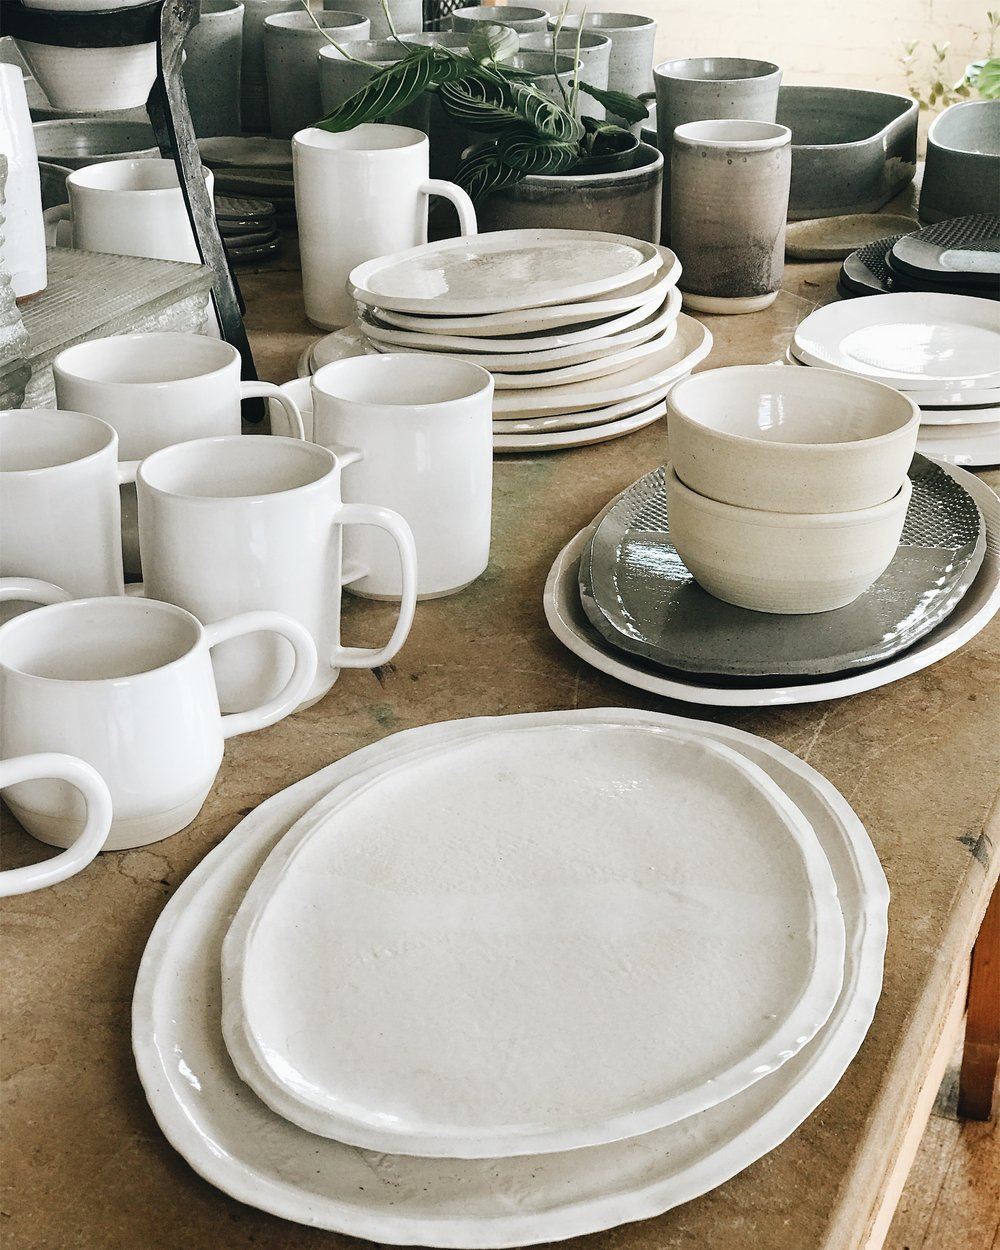 Pepo Ceramics, Weekend Getaway, Winnipeg, Nyla Free Designs, NFDI Travels, Calgary Interior Designer